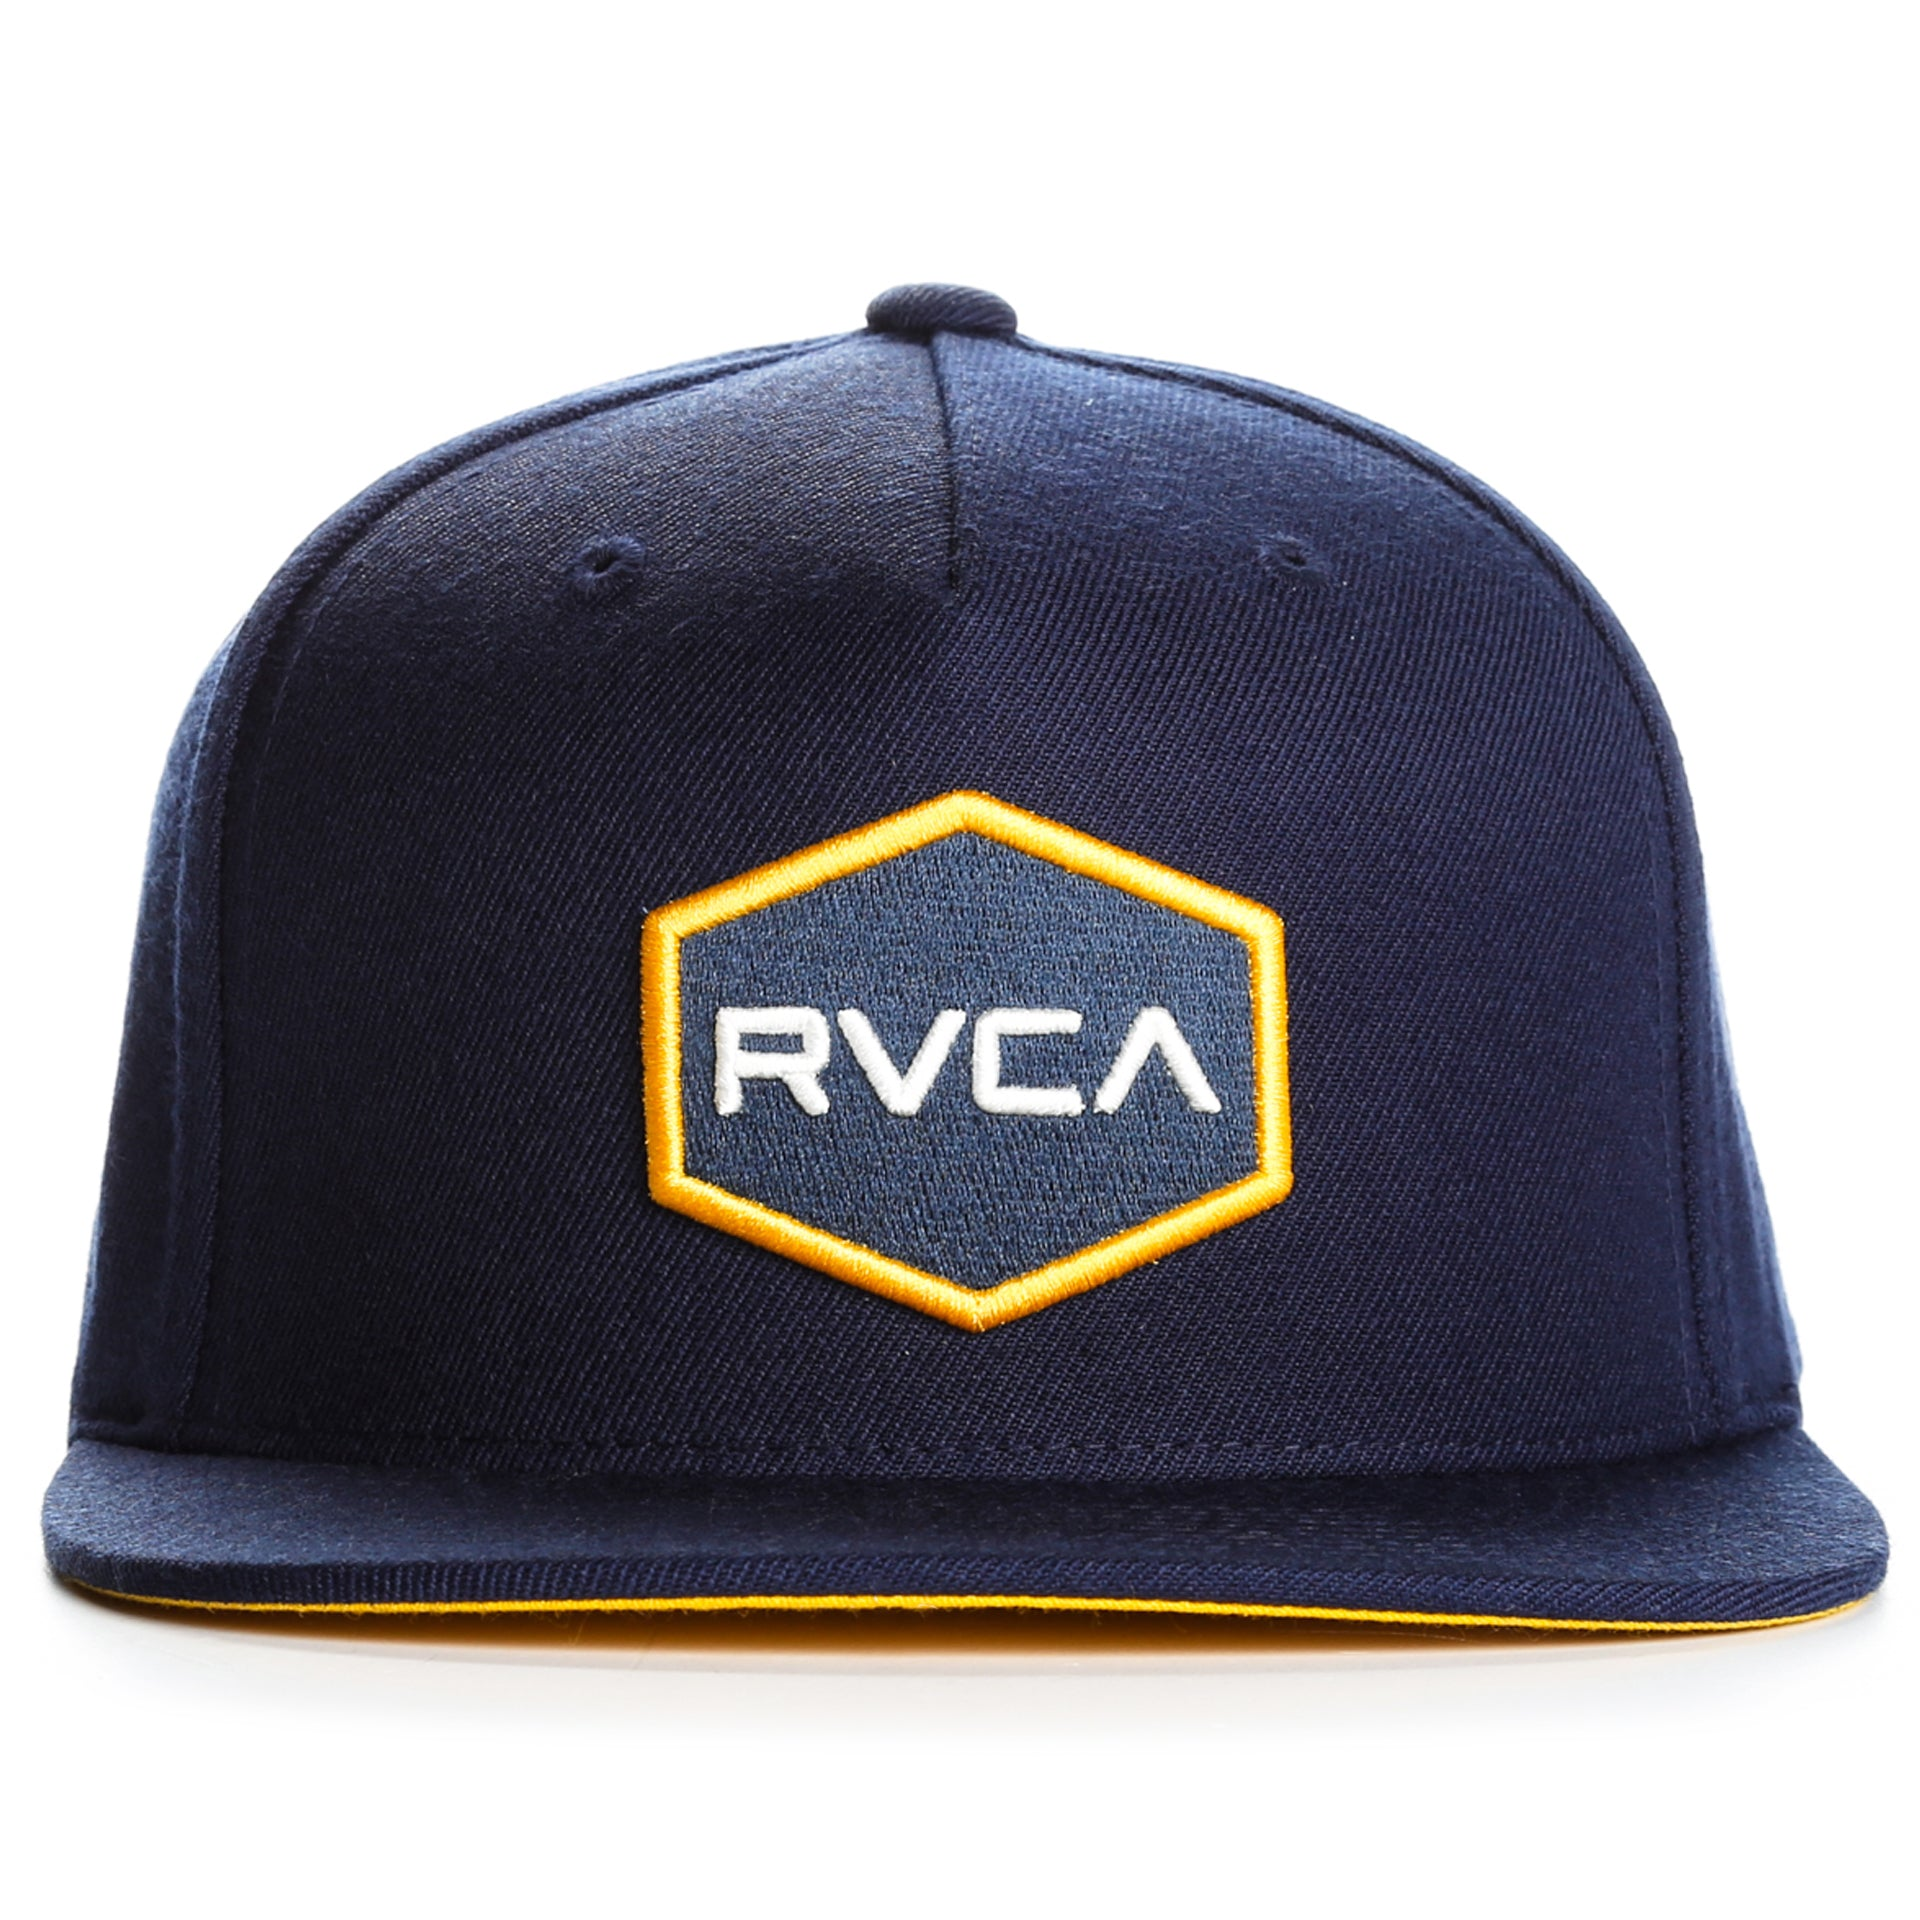 sale retailer f1380 77608 RVCA Common Wealth Snapback II Hat - Navy